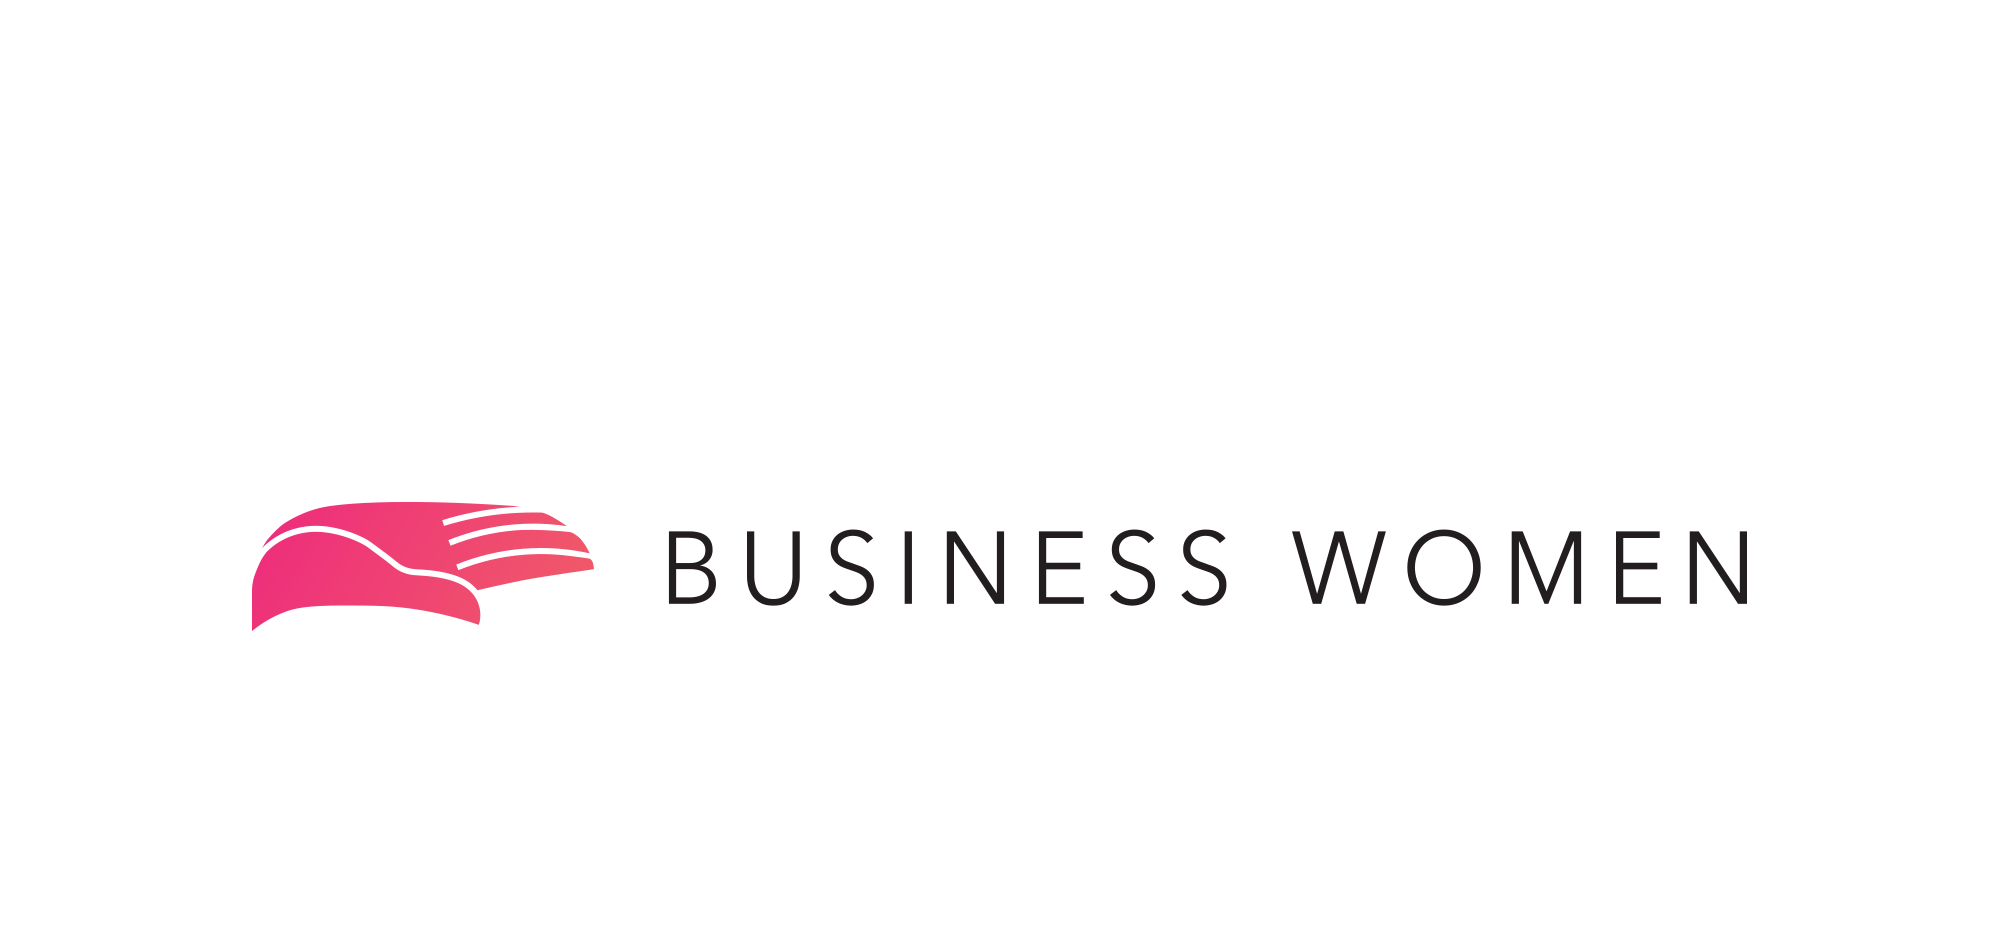 lawton business women logo